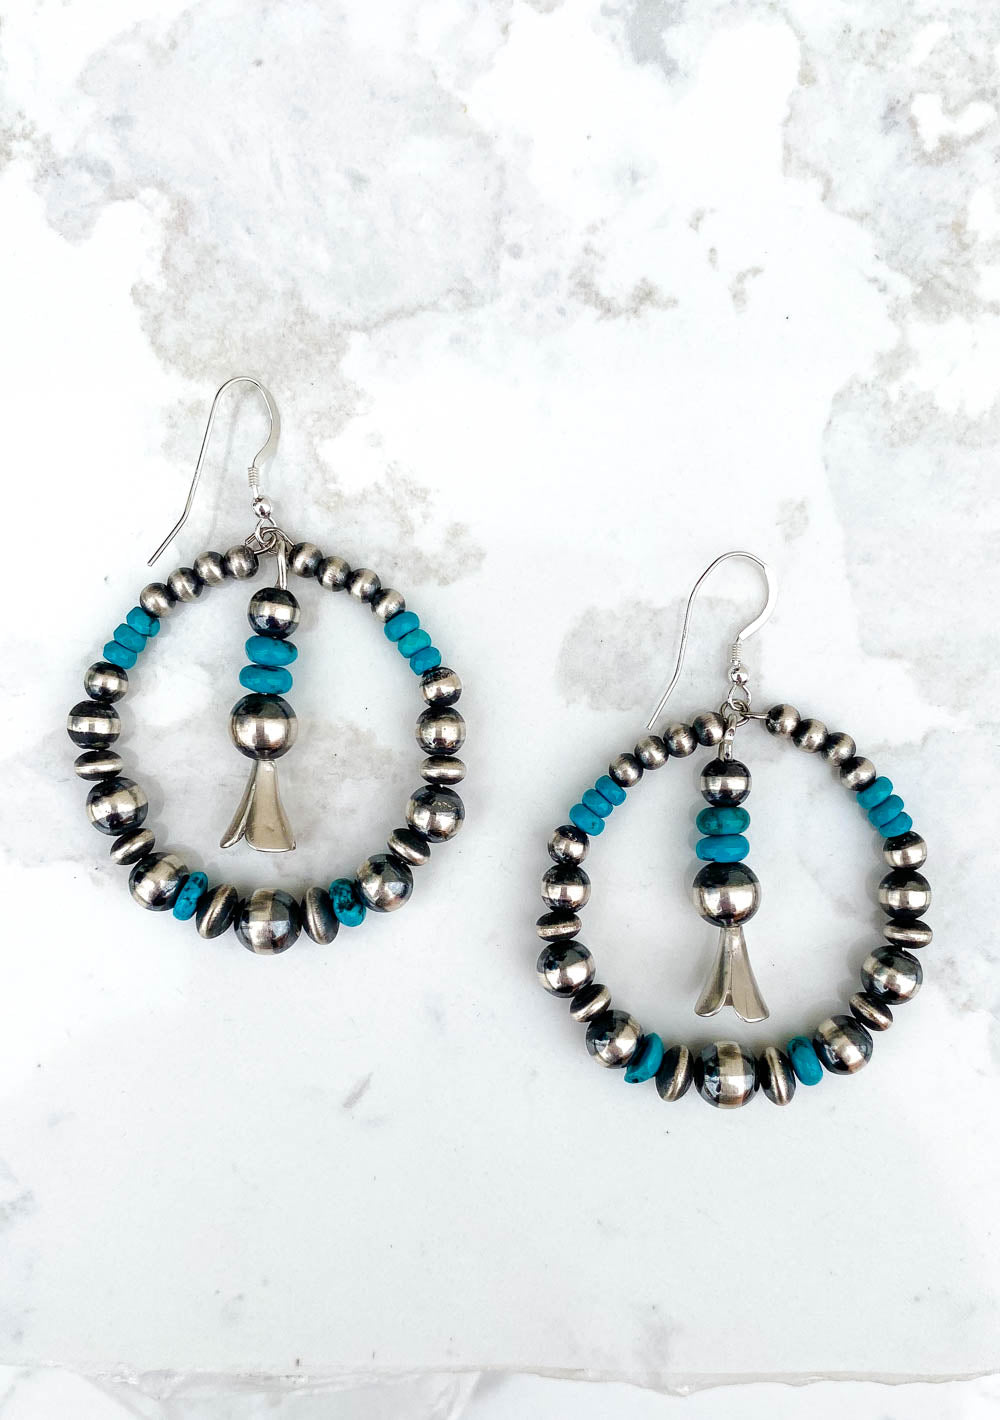 Navajo Pearl and Turquoise Hoops Earrings with a Blossom Drop